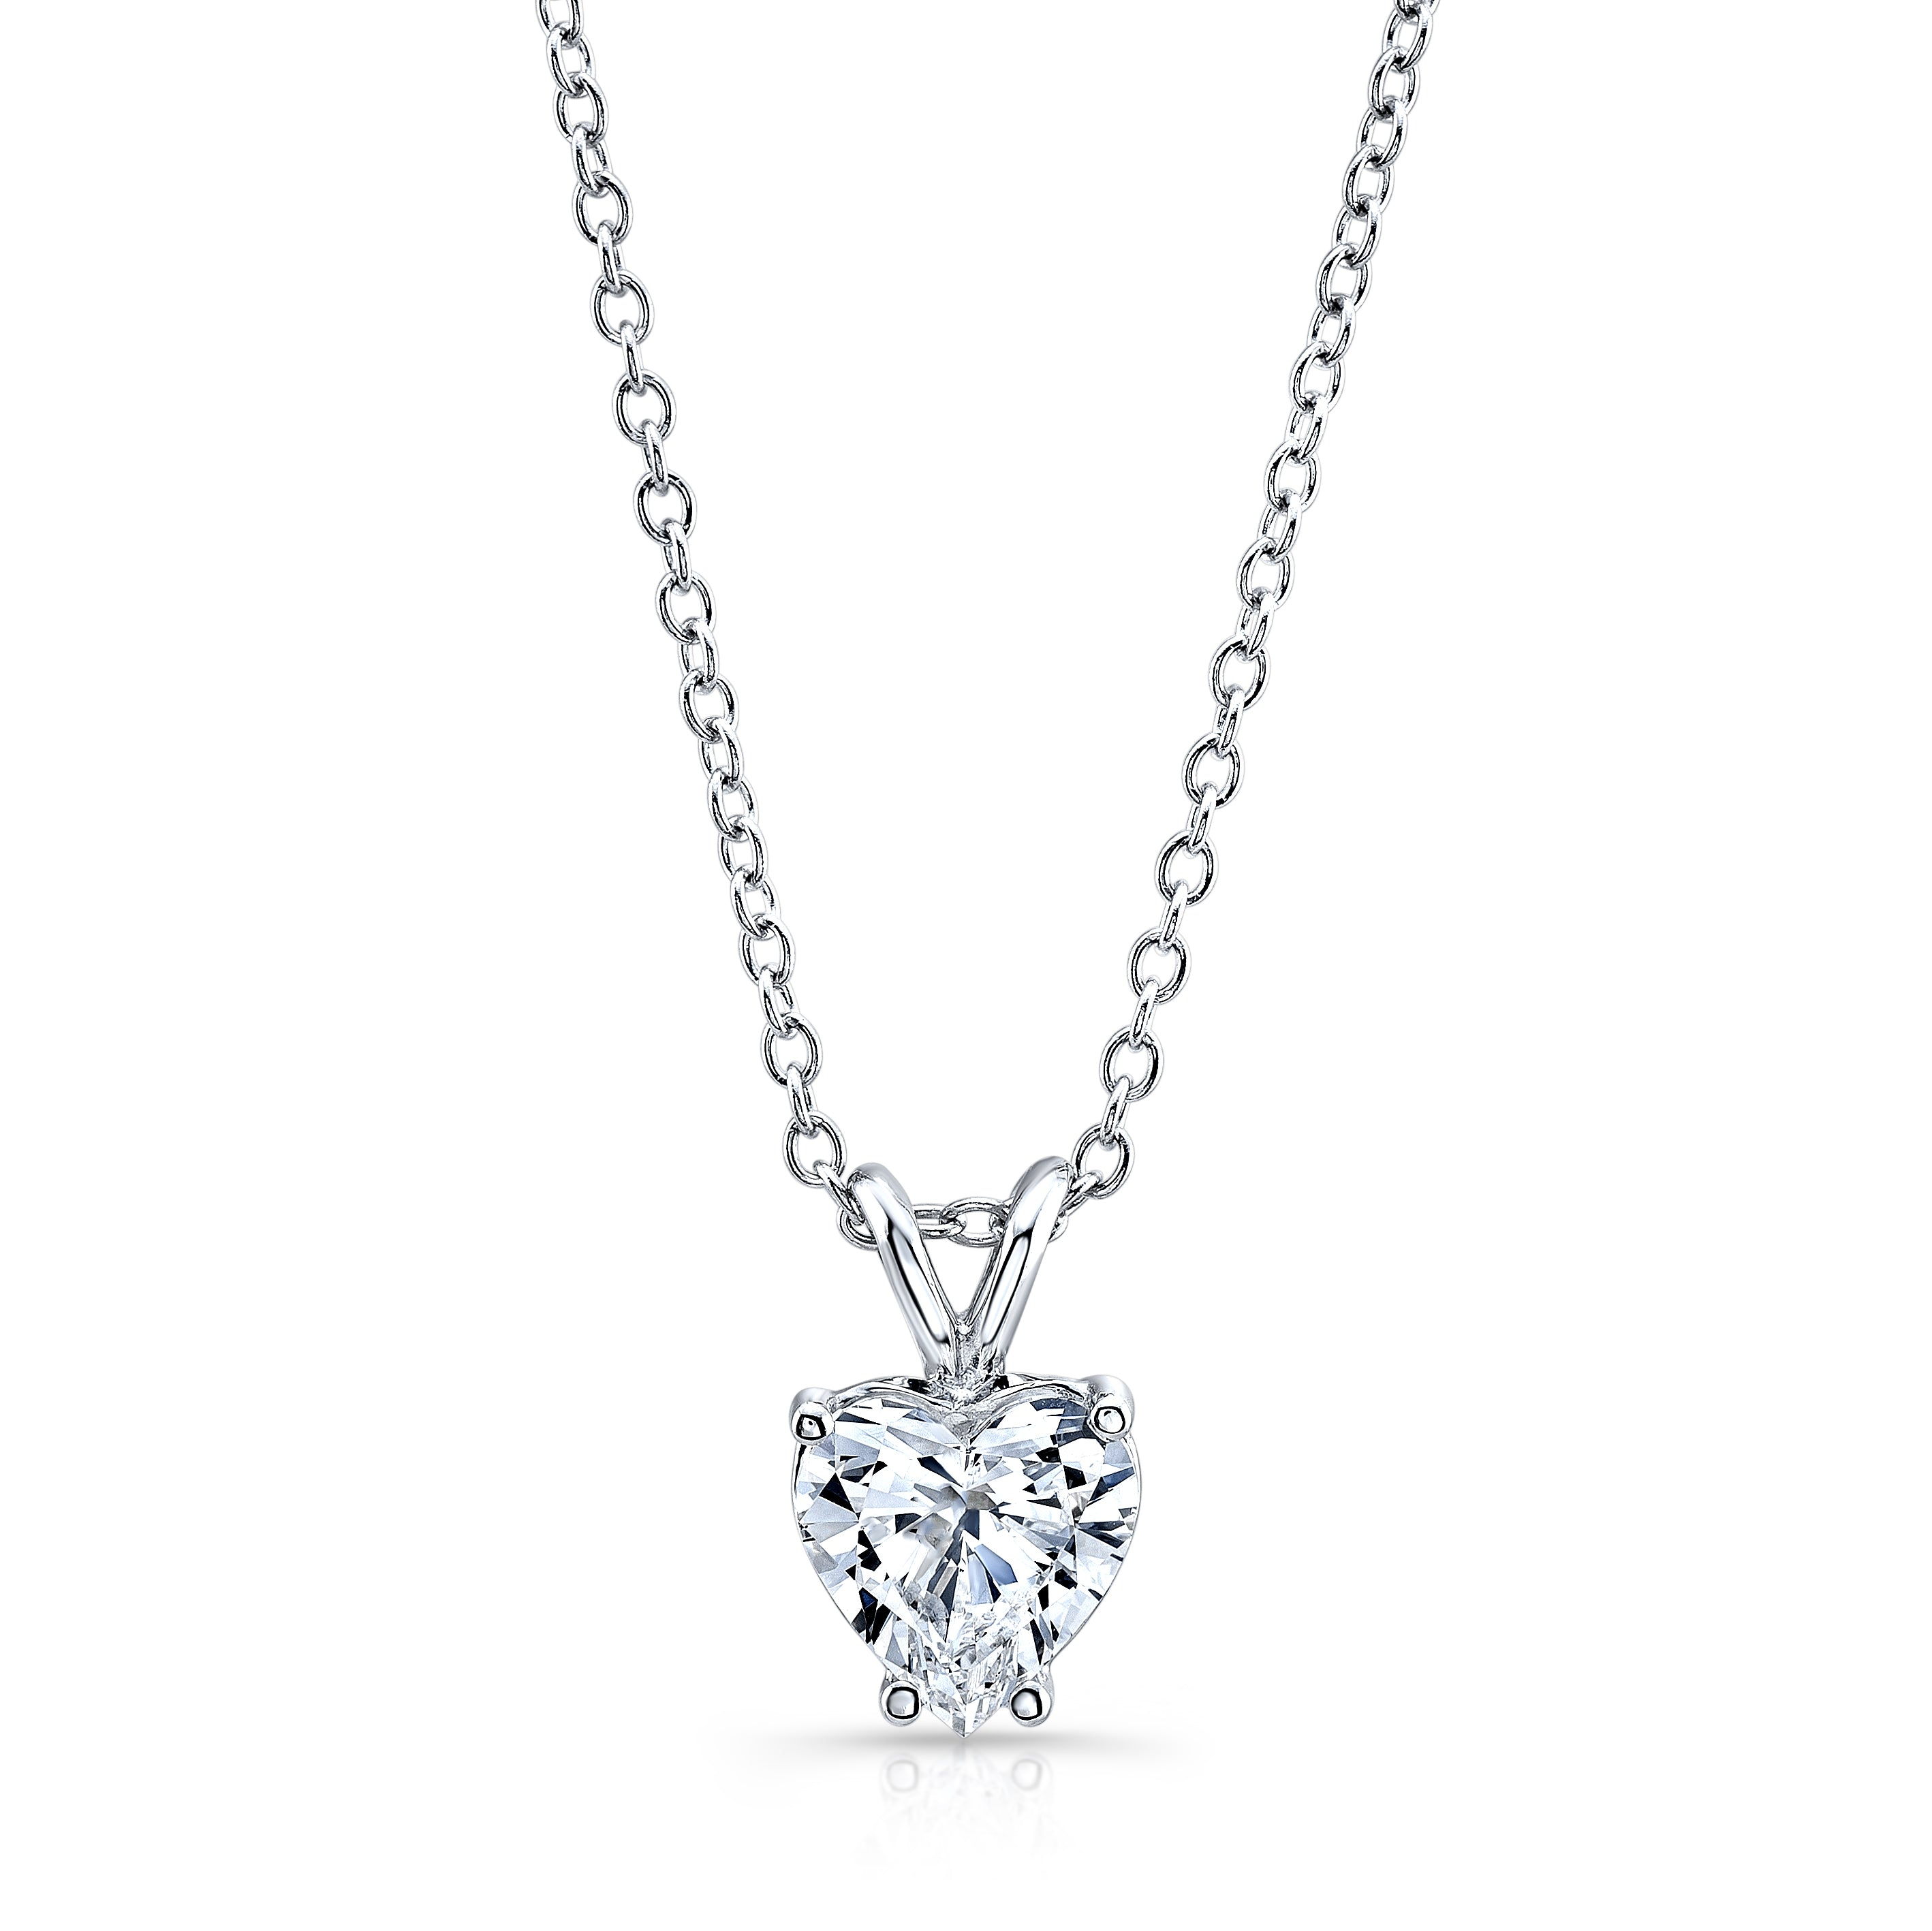 platinum pendant art deco necklace diamond